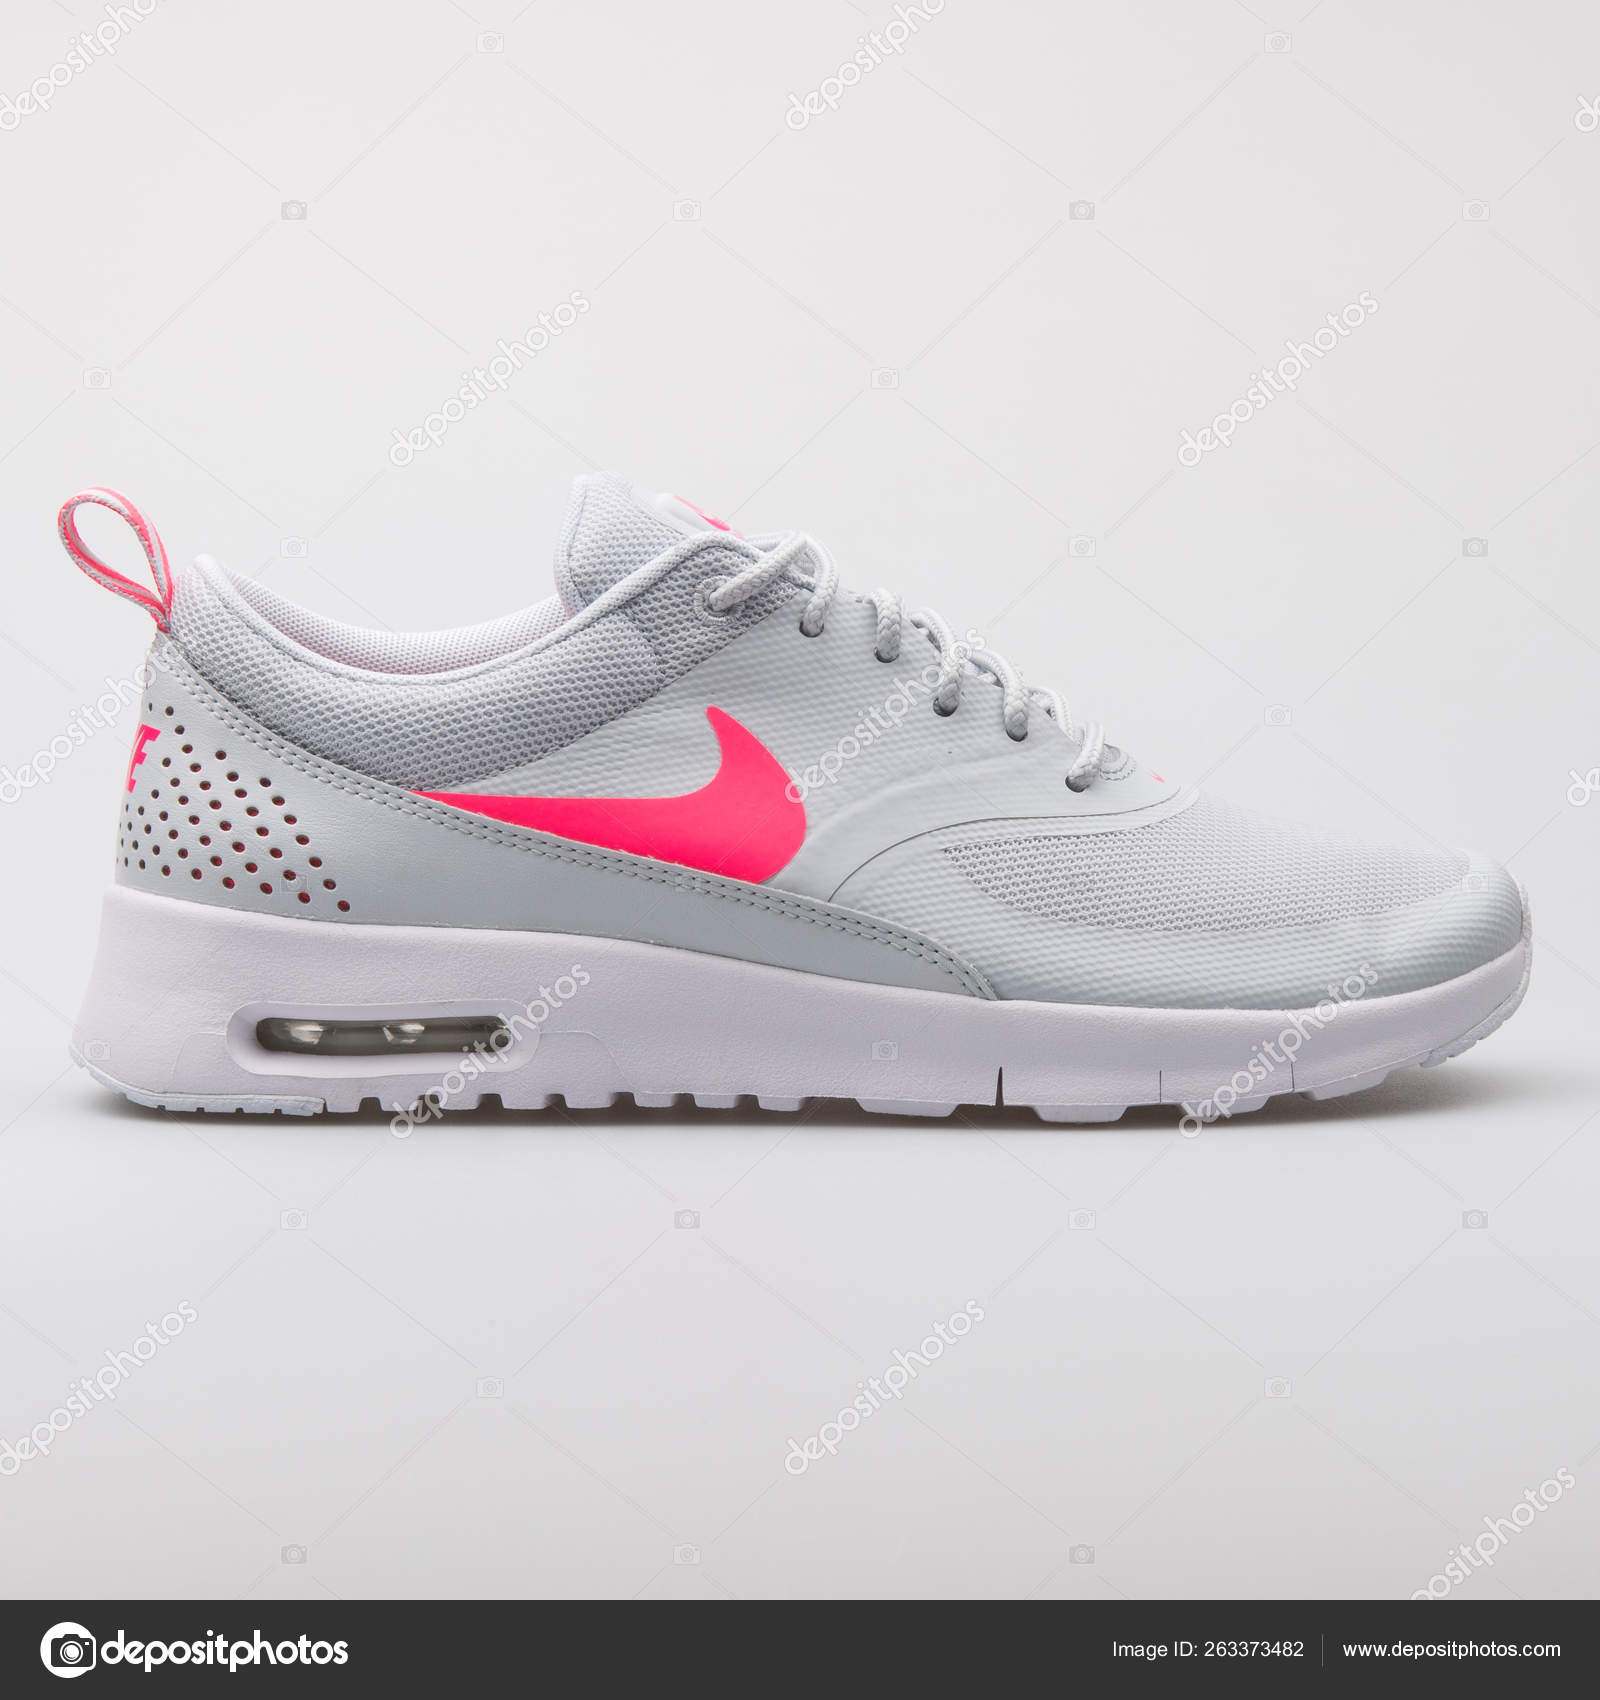 maravilloso Donación catalogar  Nike Air Max Thea grey and pink sneaker – Stock Editorial Photo ©  xMarshallfilms #263373482